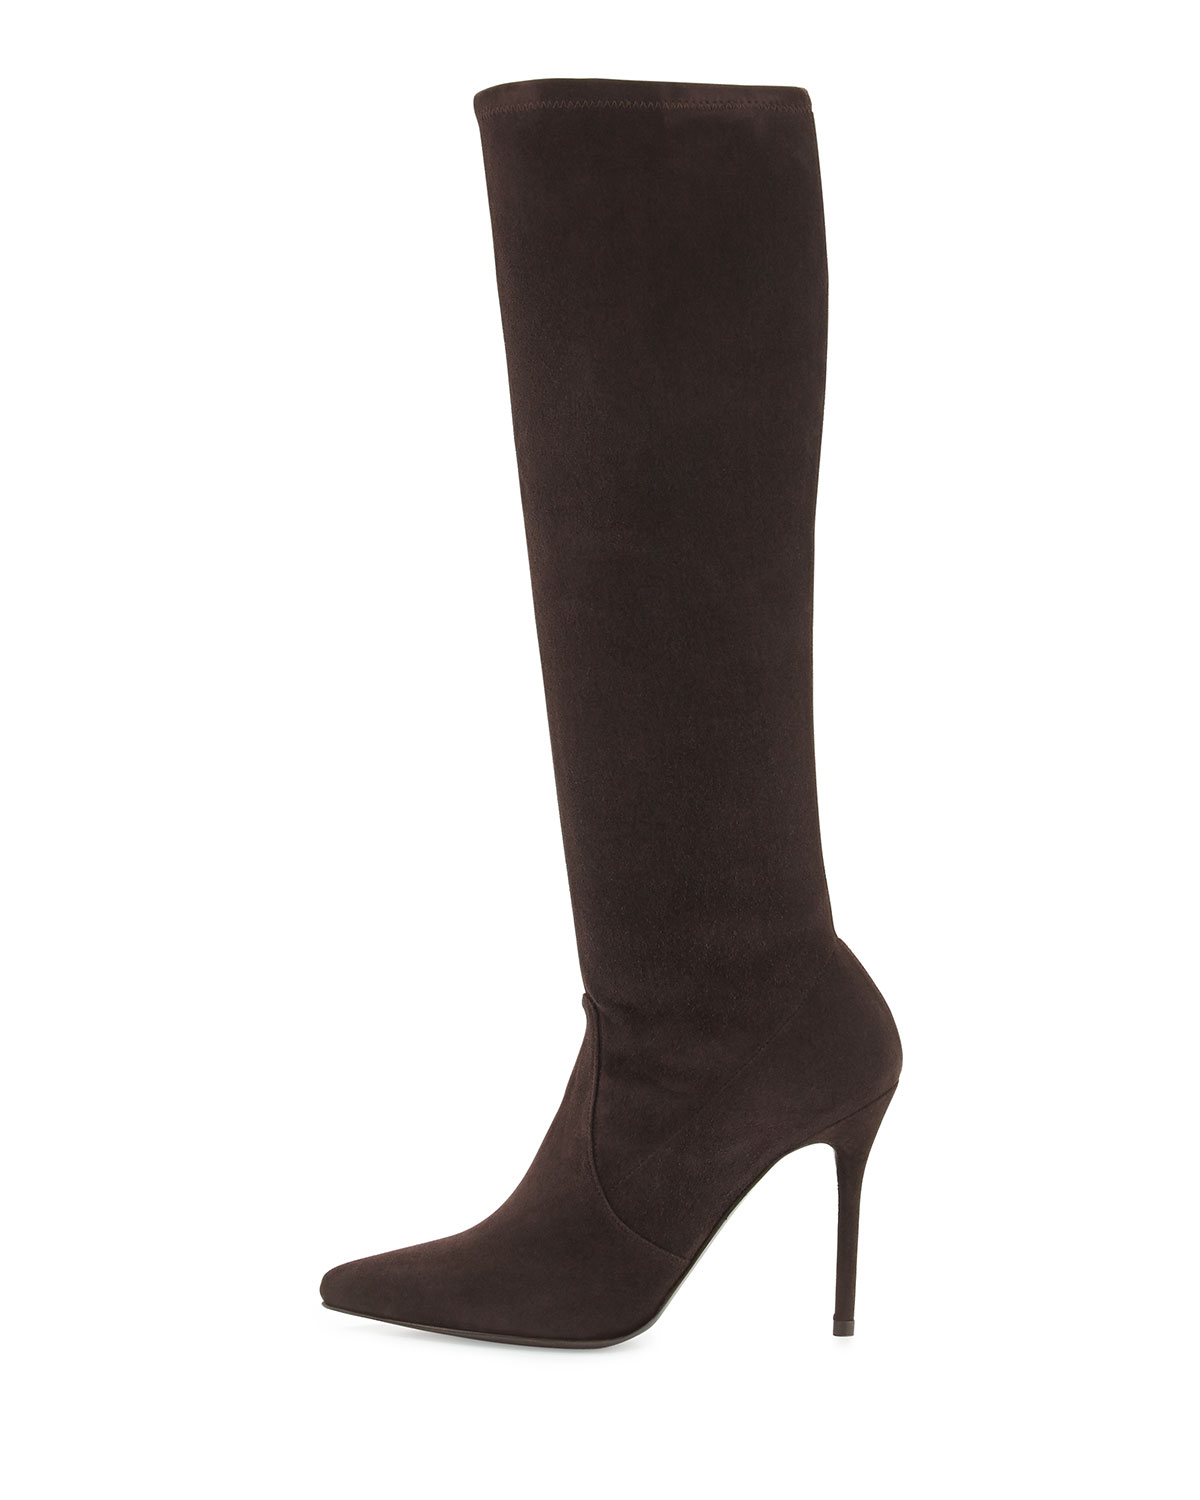 stuart weitzman benefit stretch suede boot cola made to